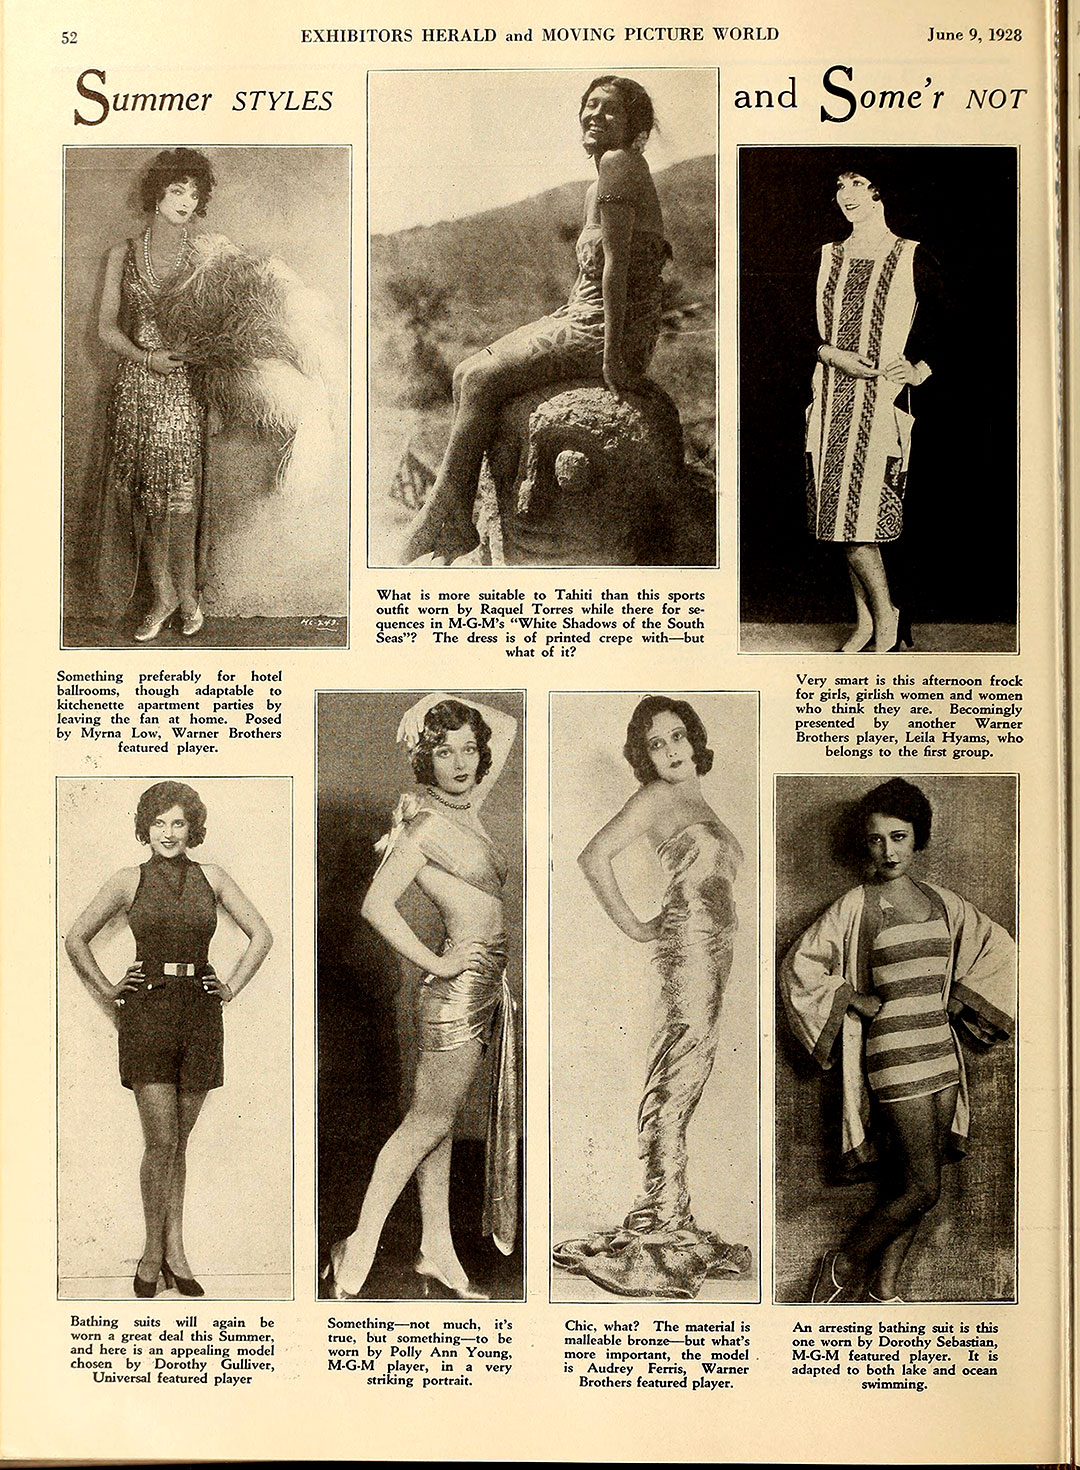 Fashions from Summer 1928